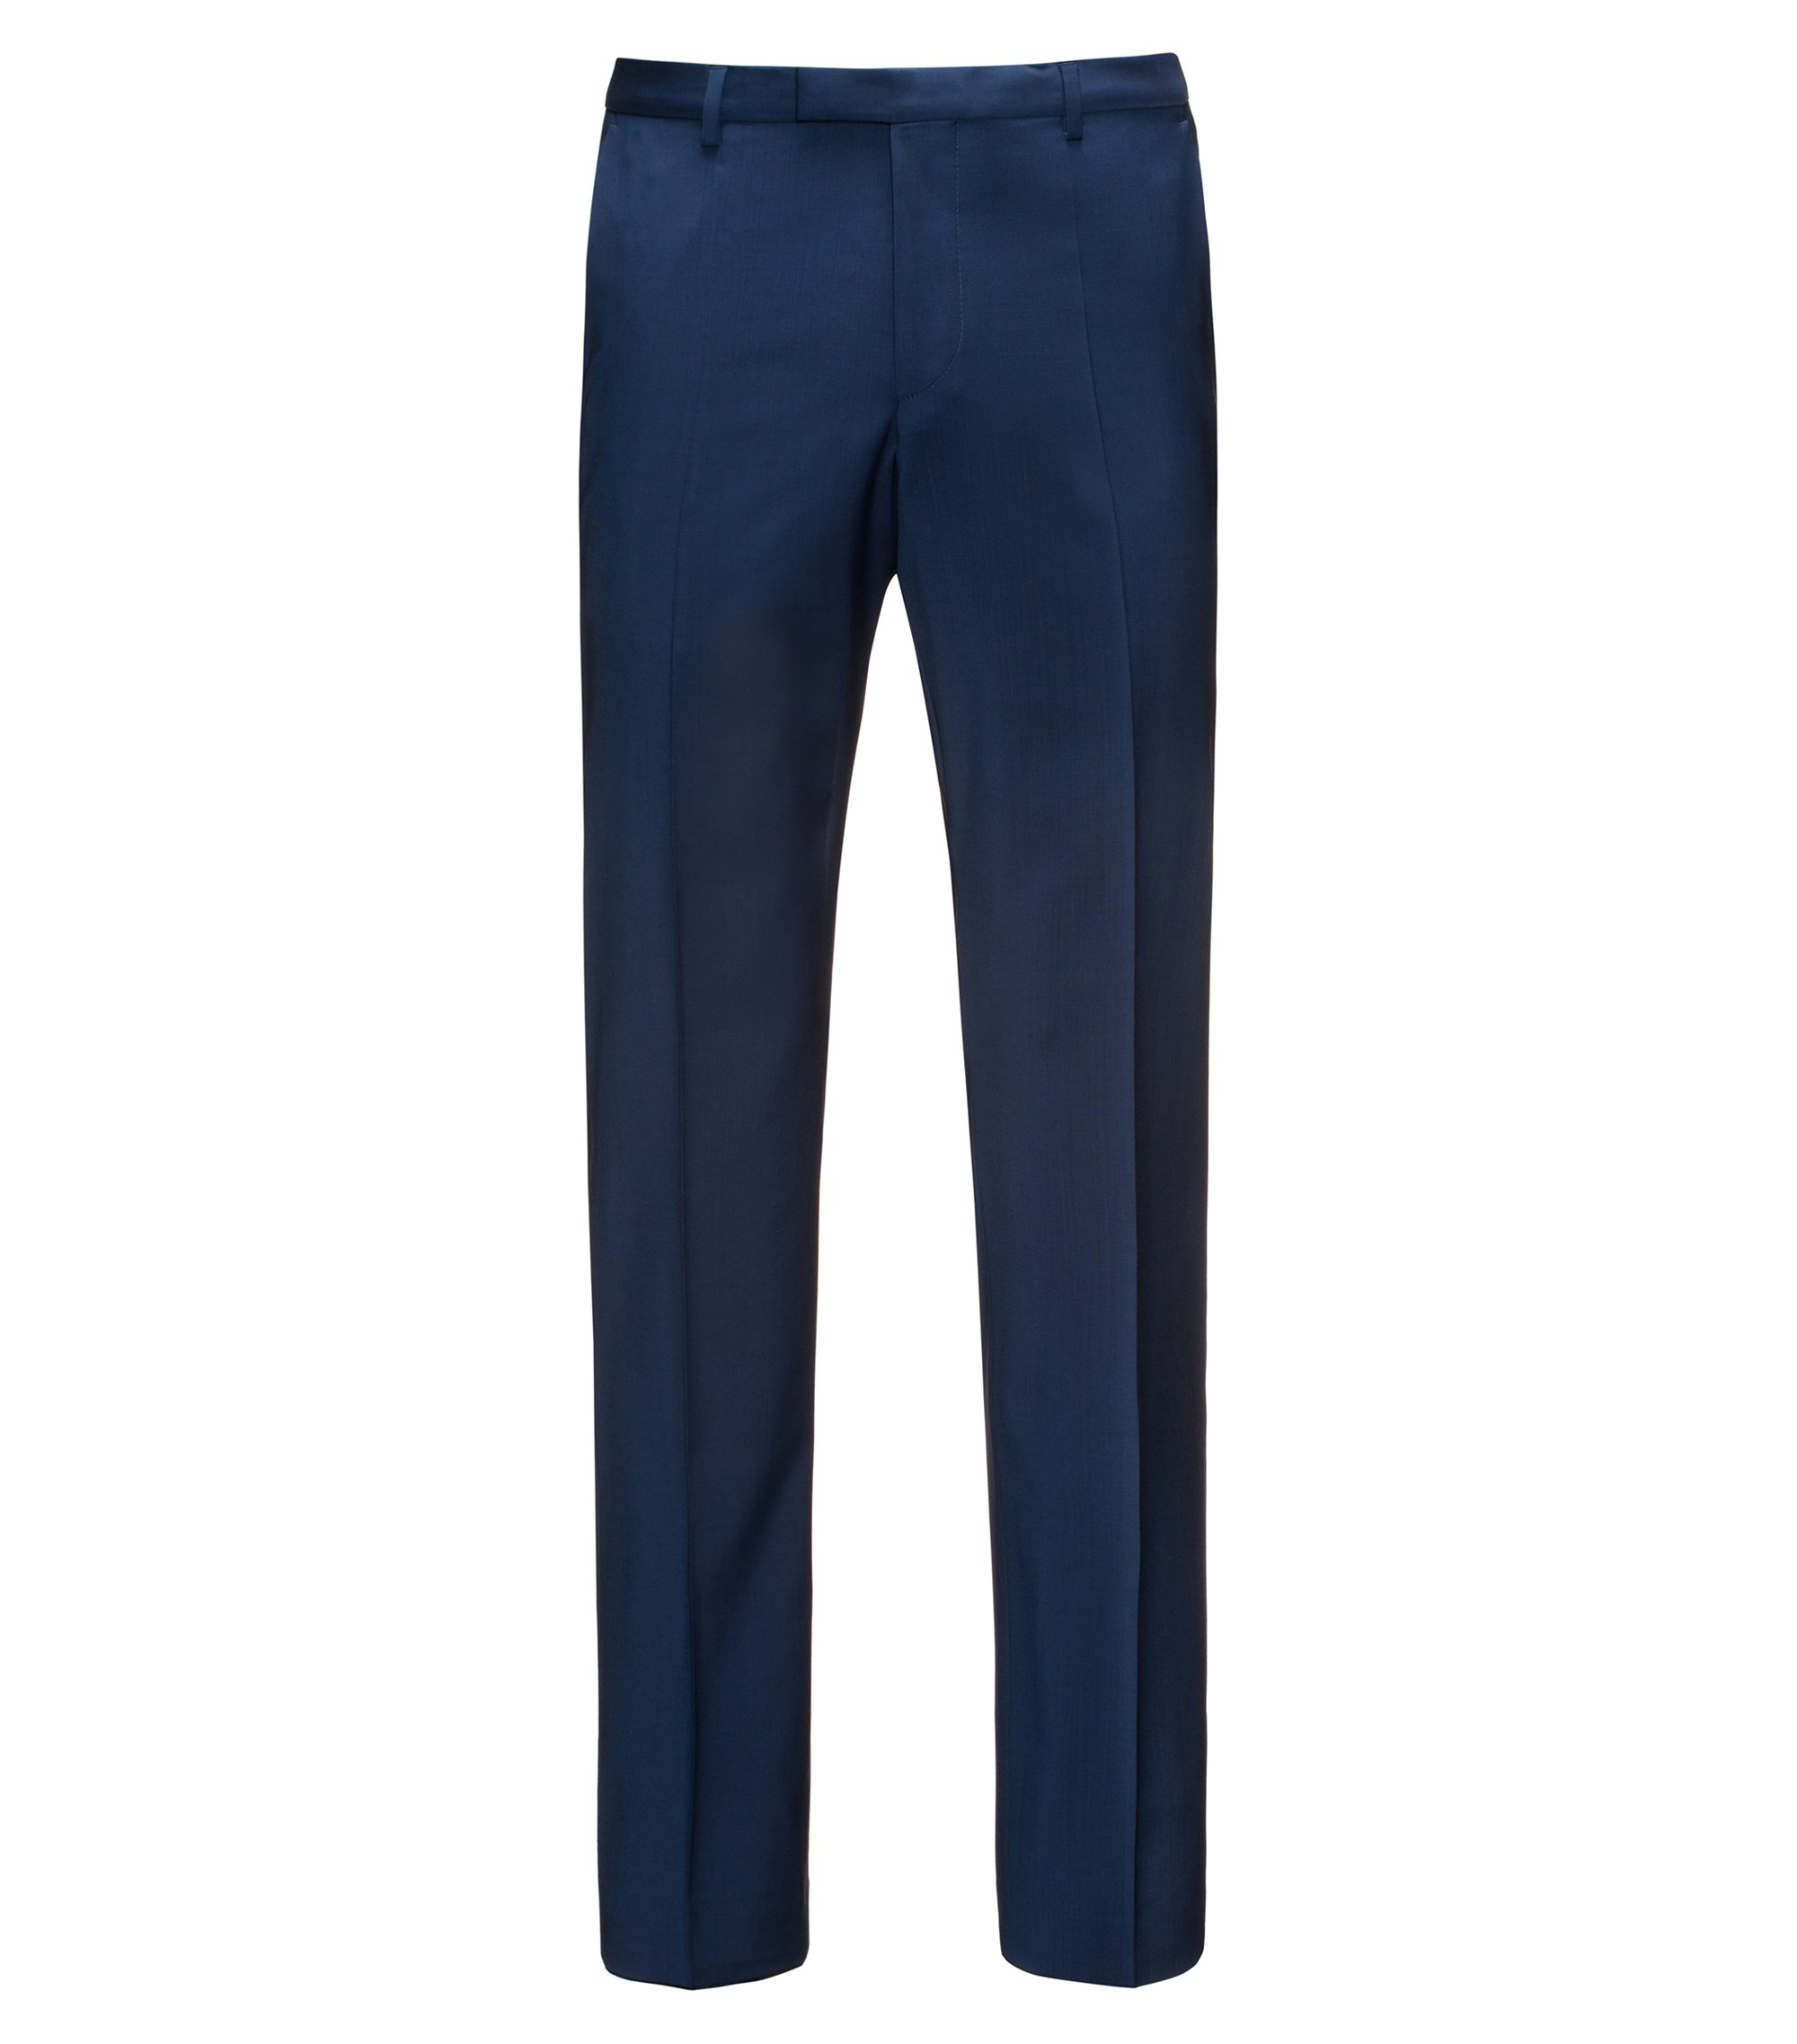 Pantalon Regular Fit en laine vierge , Bleu